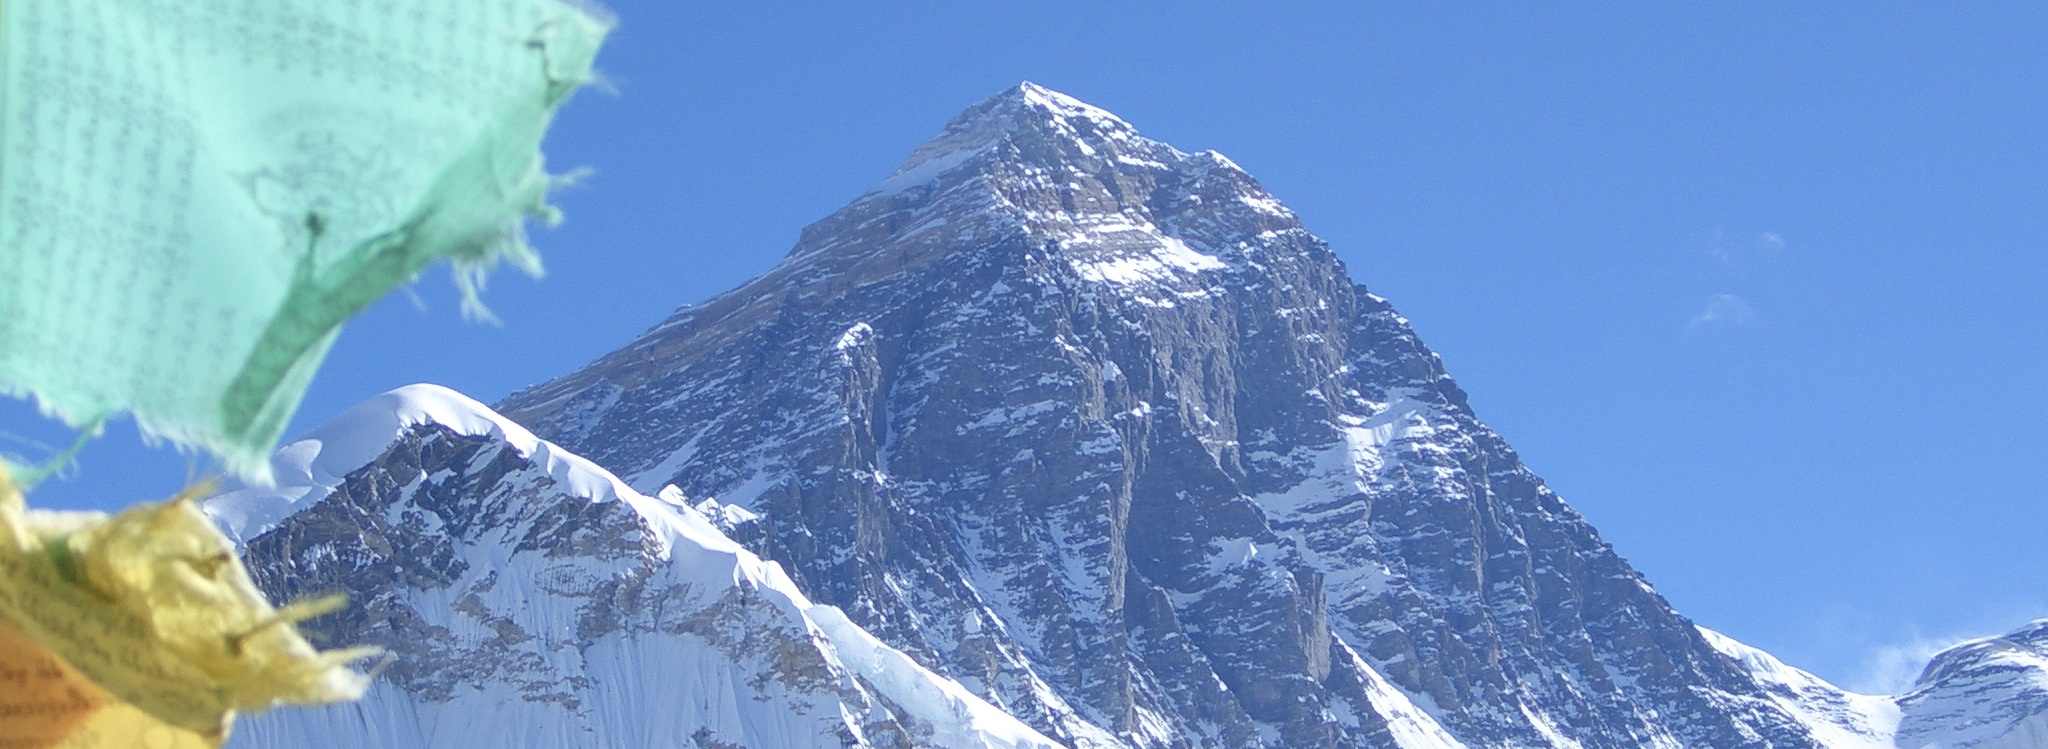 MP_WS_Blog_Everest_Kapitelbild